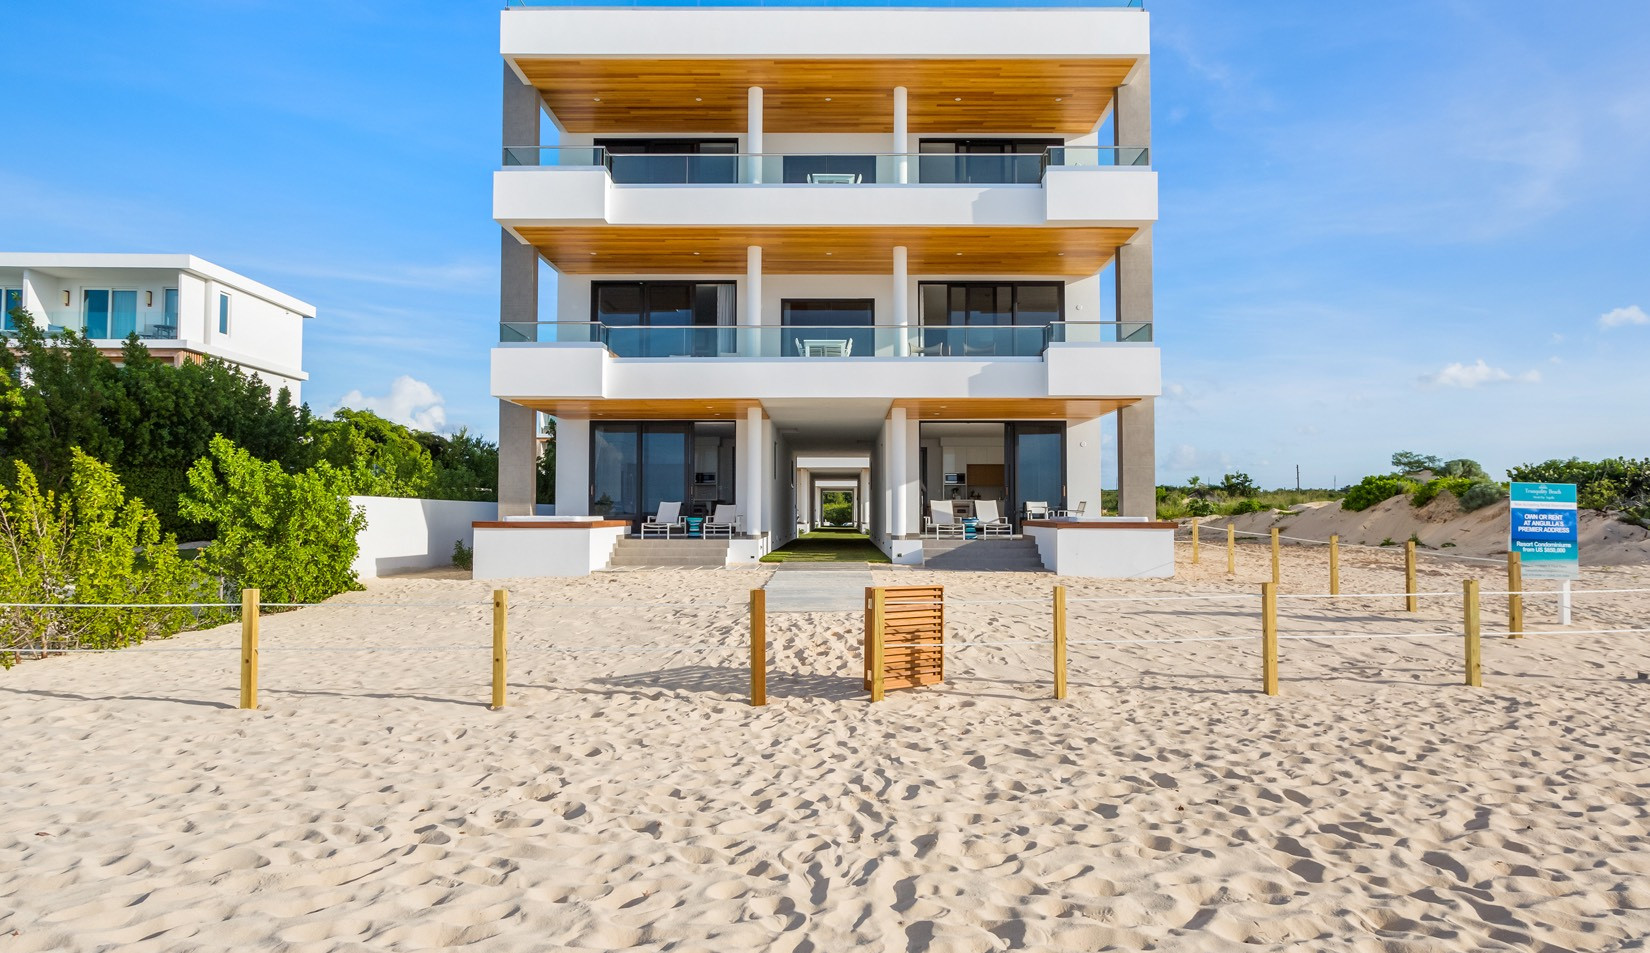 Tranquility Anguilla Front View.jpg